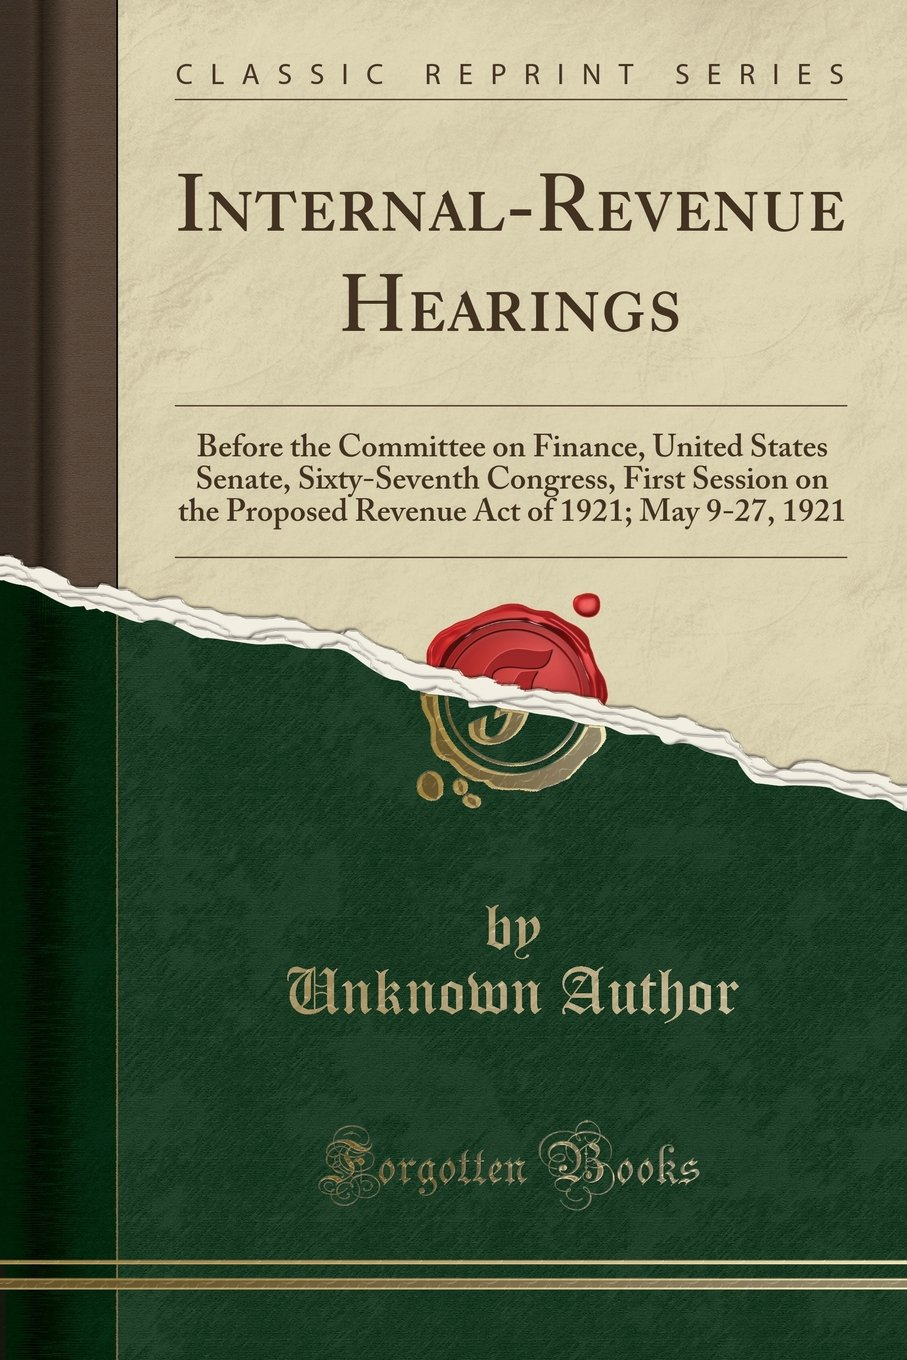 Read Online Internal-Revenue Hearings: Before the Committee on Finance, United States Senate, Sixty-Seventh Congress, First Session on the Proposed Revenue Act of 1921; May 9-27, 1921 (Classic Reprint) pdf